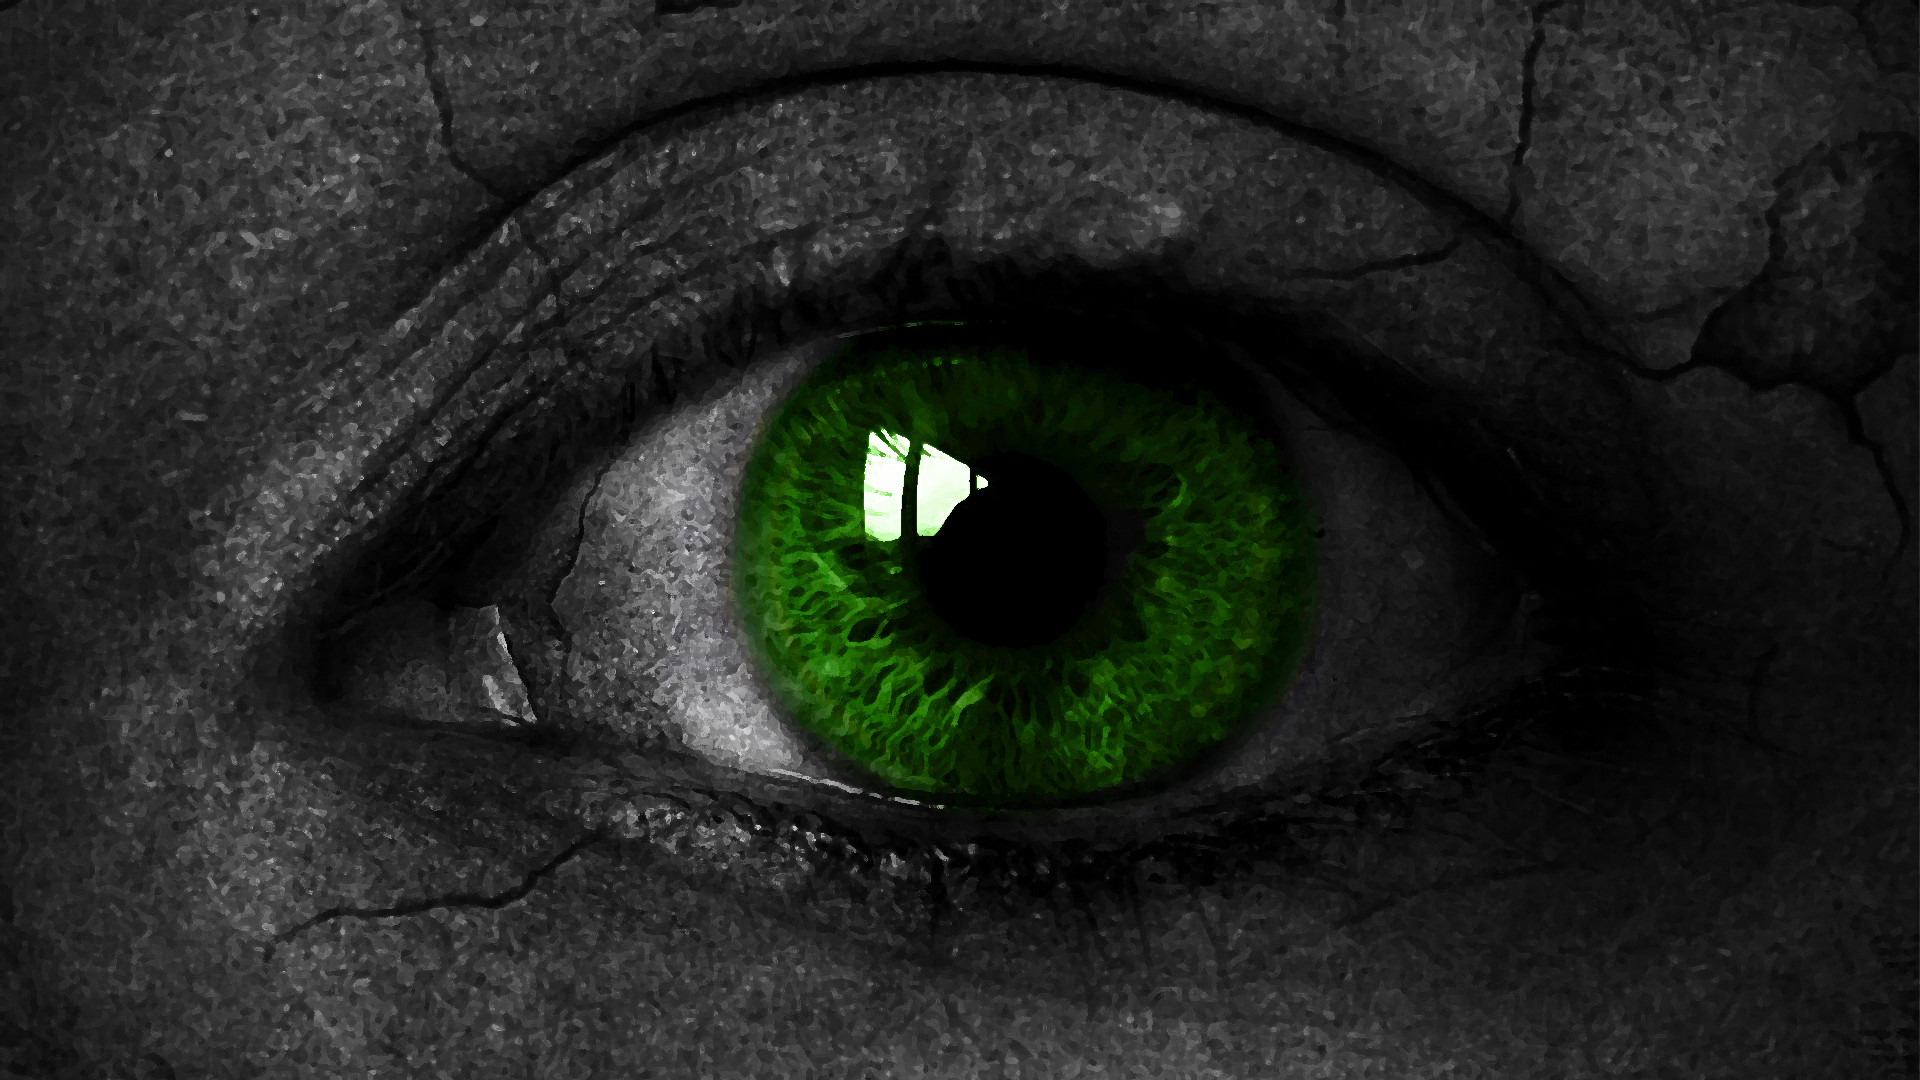 Green Eyes Wallpaper 66 Pictures